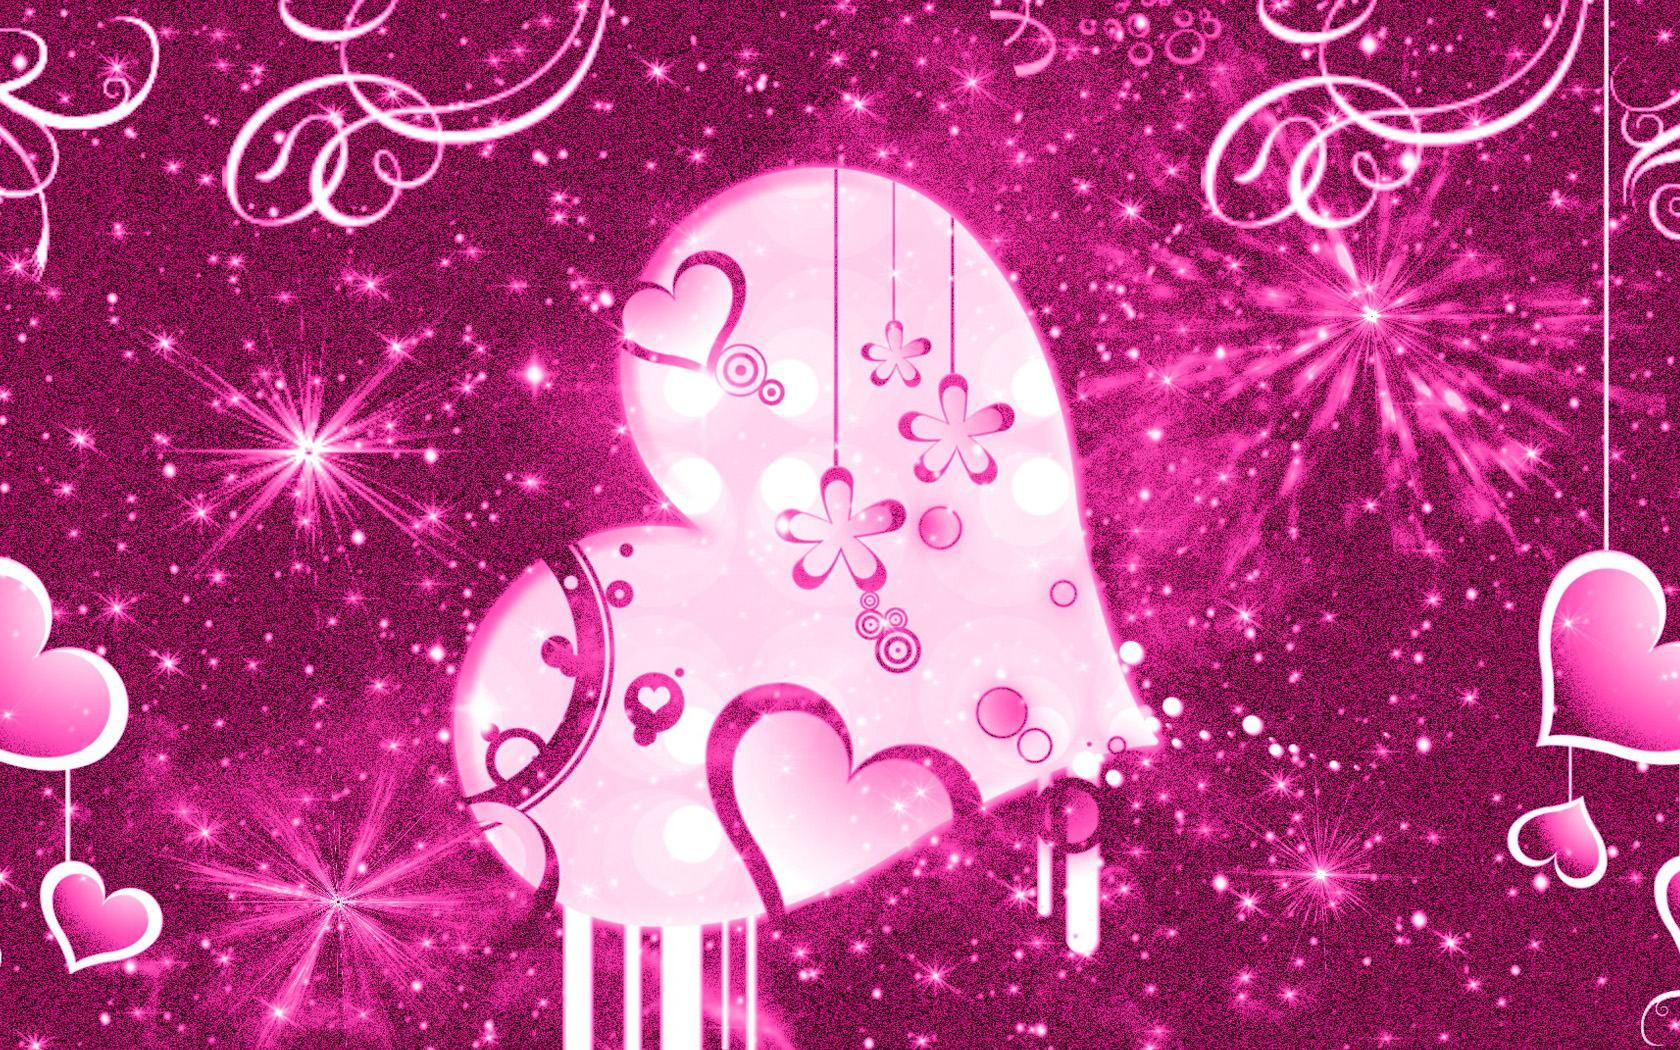 Hearts With Images Backgrounds Girly Cute Girl Wallpaper Pretty Wallpapers